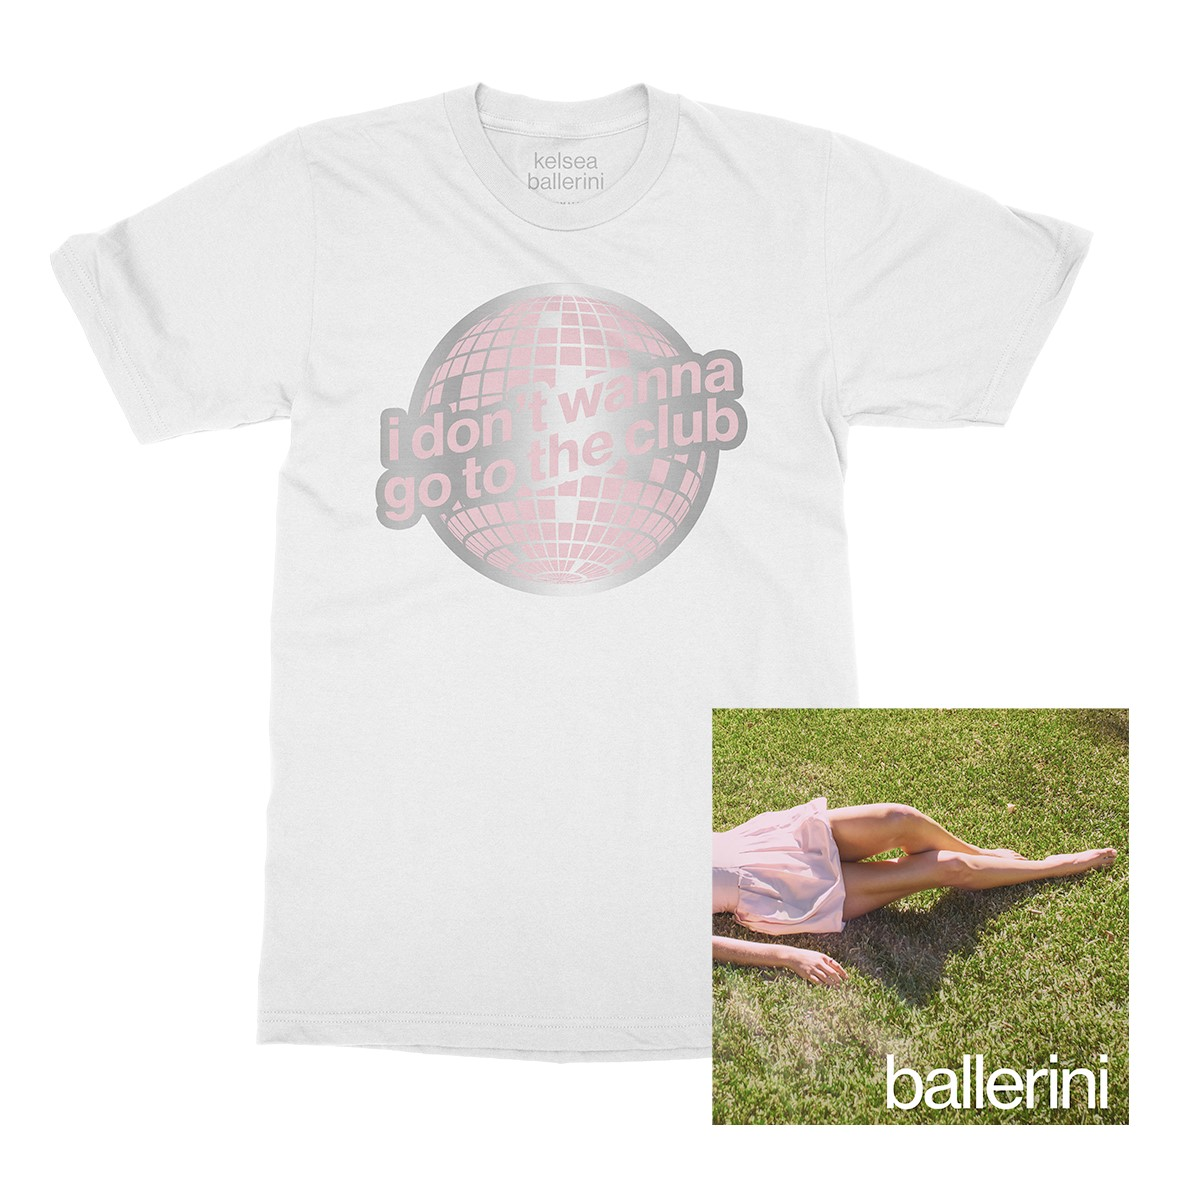 i don't wanna go to the club t-shirt + ballerini digital download